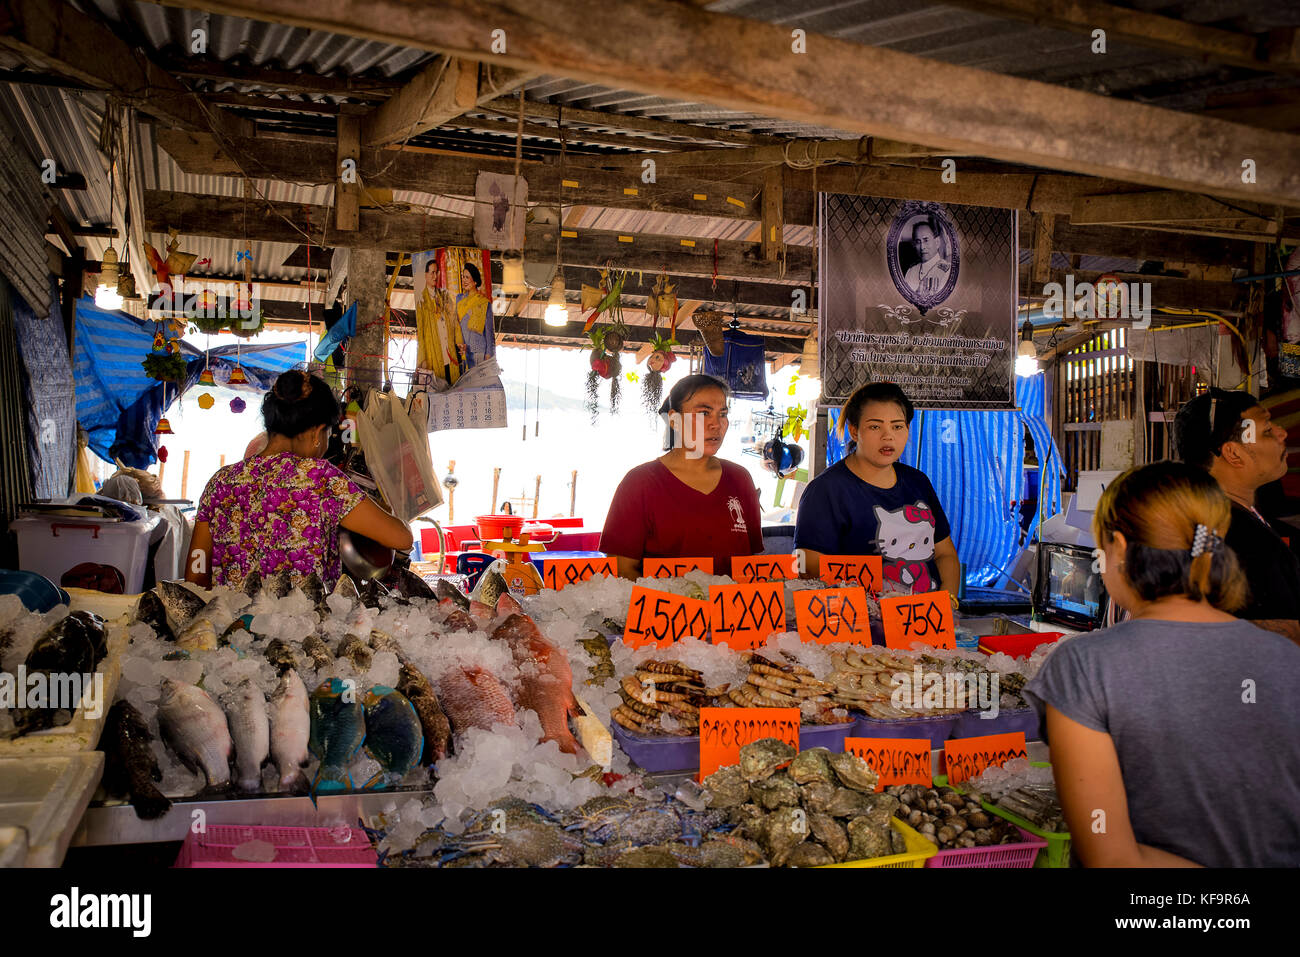 Chao leh stock photos chao leh stock images alamy for Village fish market